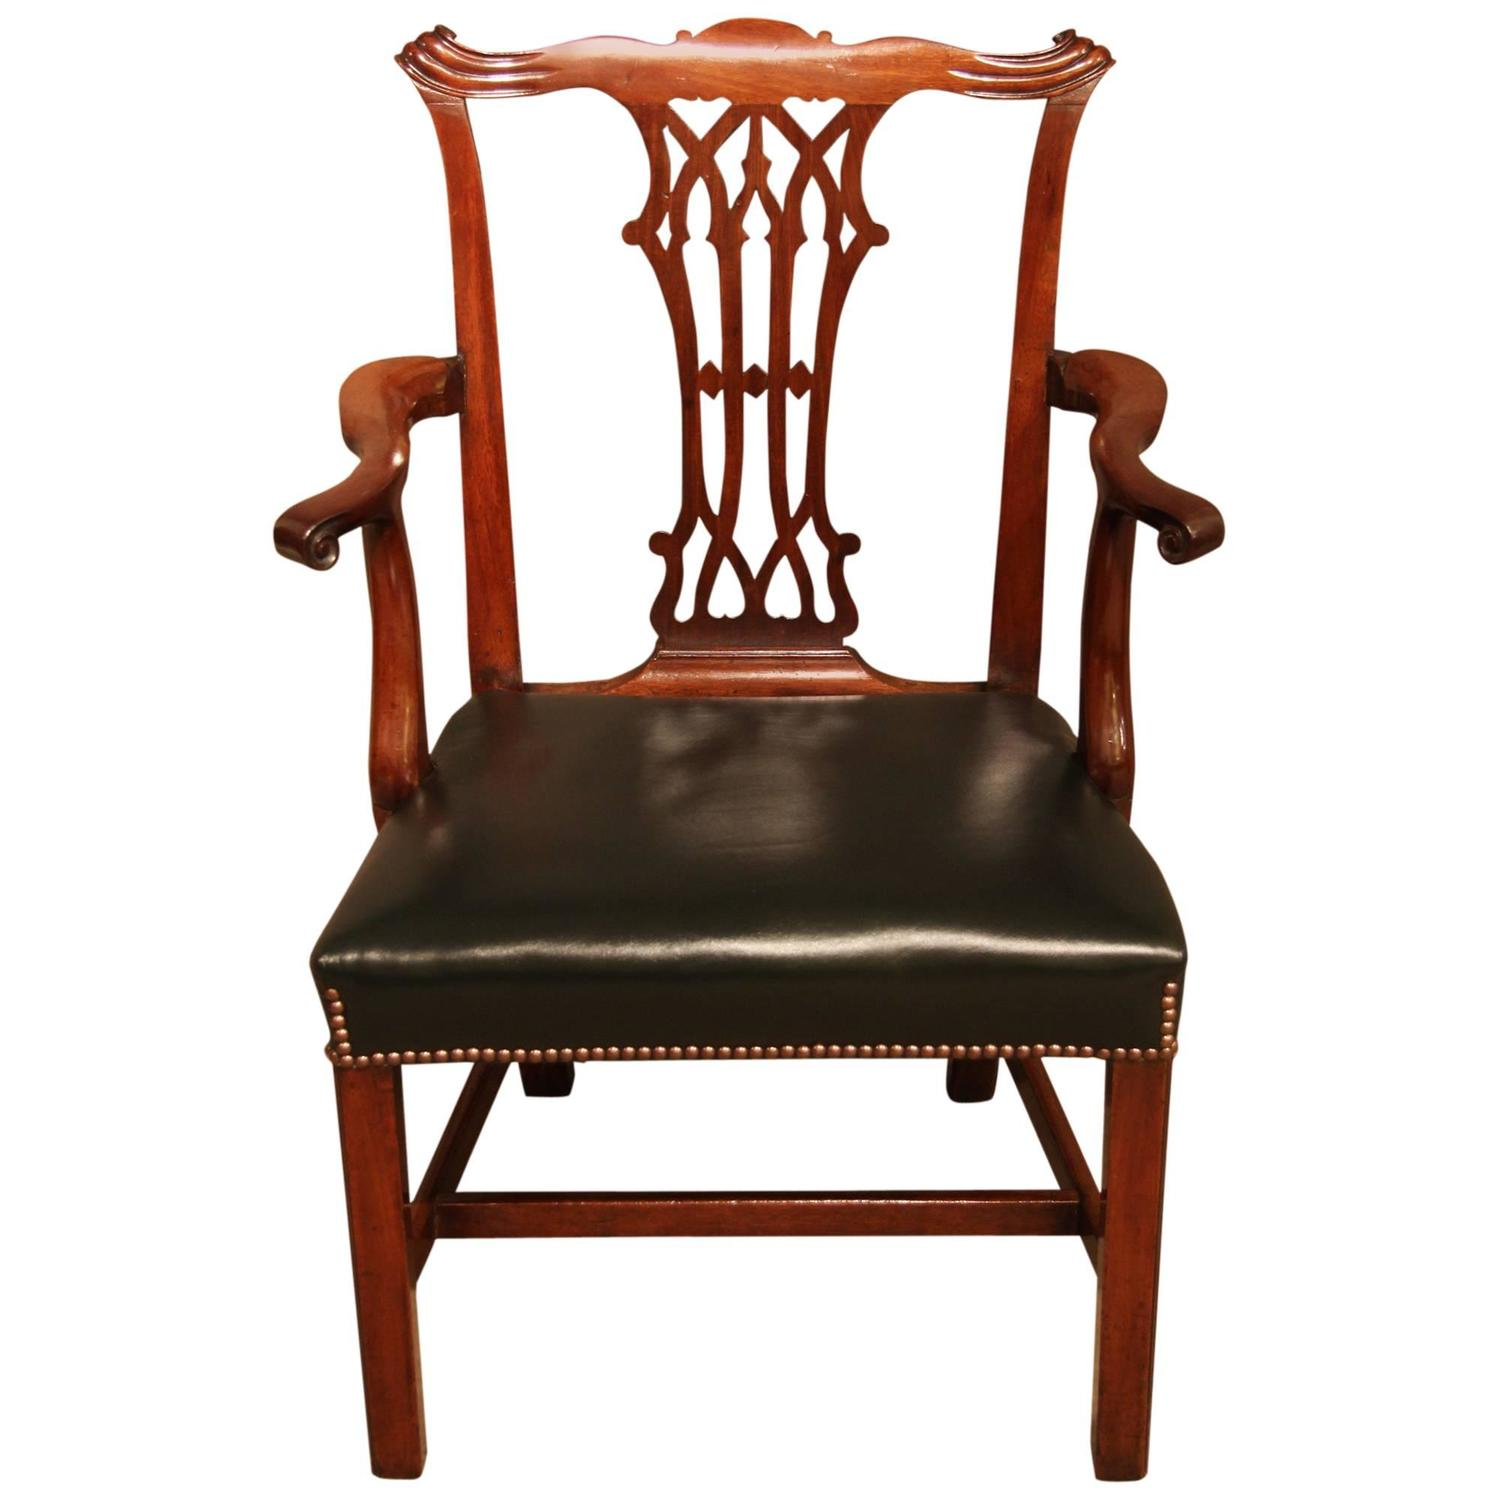 chair with desk arm svan signet high chippendale period mahogany or circa 1770